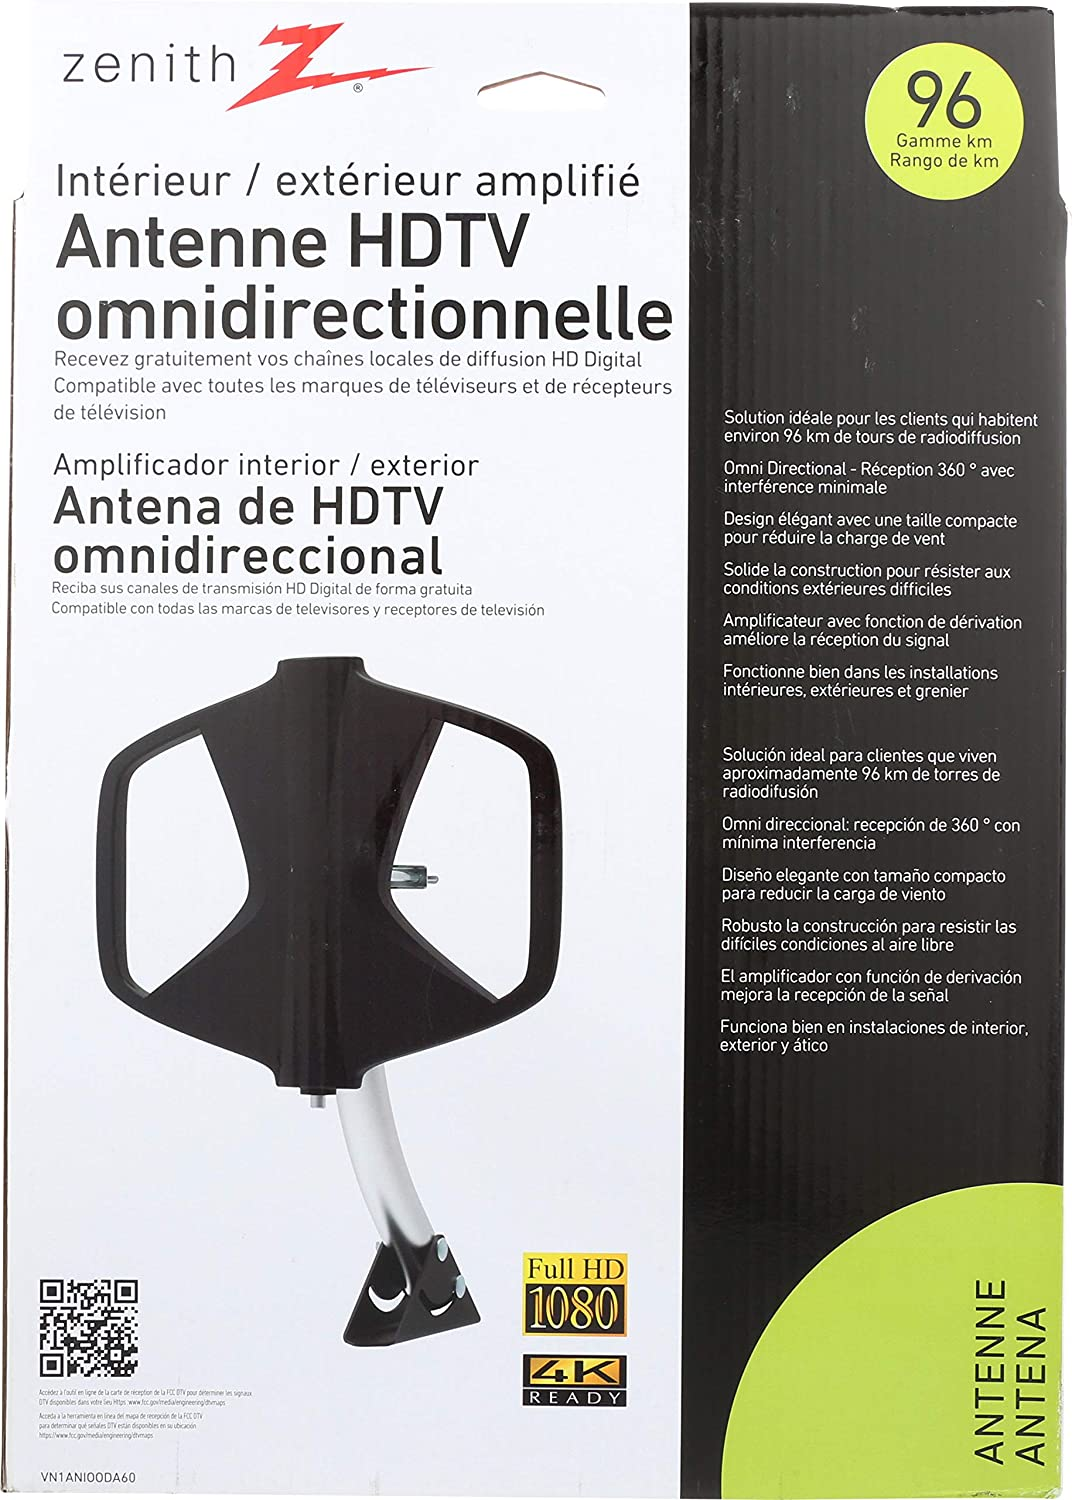 Amazon.com: AmerTac - Zenith VN1ANIOODA60 Antenna HDTV Receiver and Tuner: Electronics